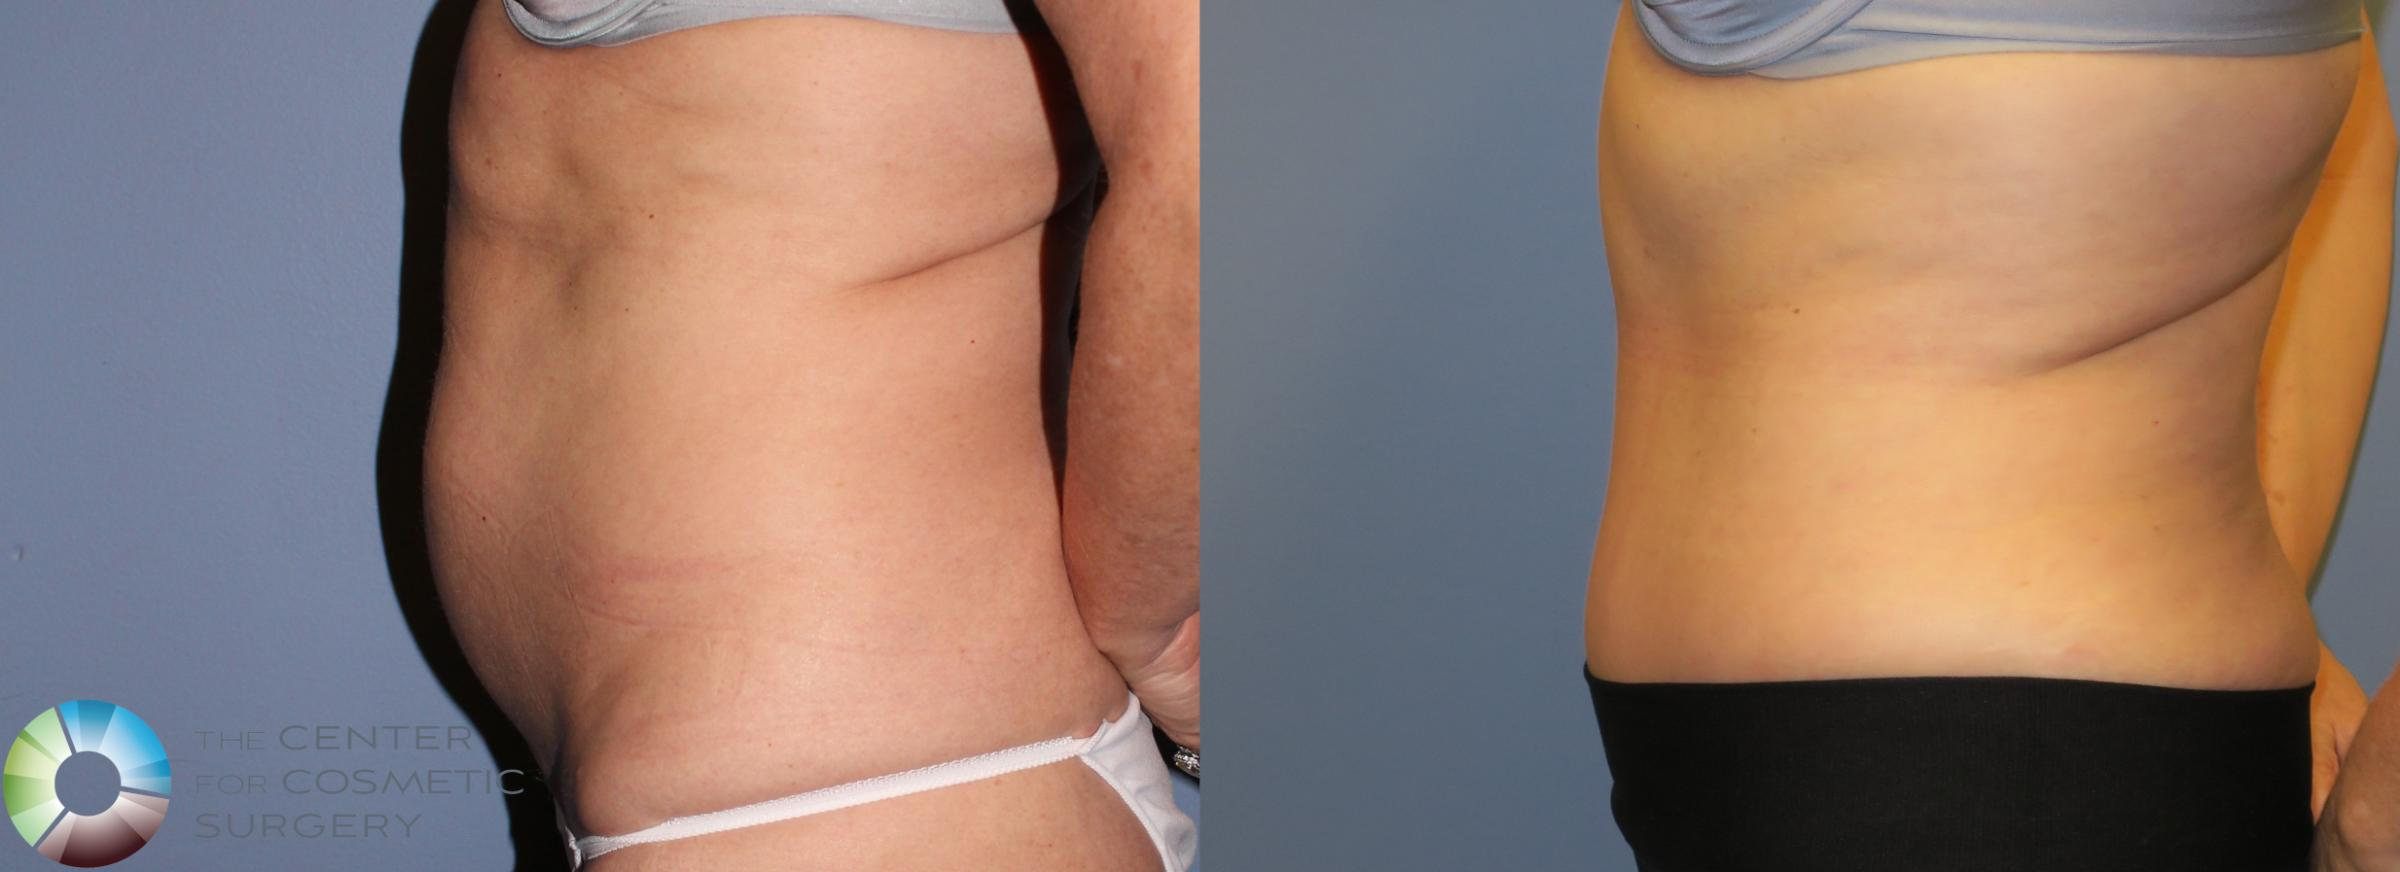 Tummy Tuck Case 853 Before & After View #3 | Golden, CO | The Center for Cosmetic Surgery